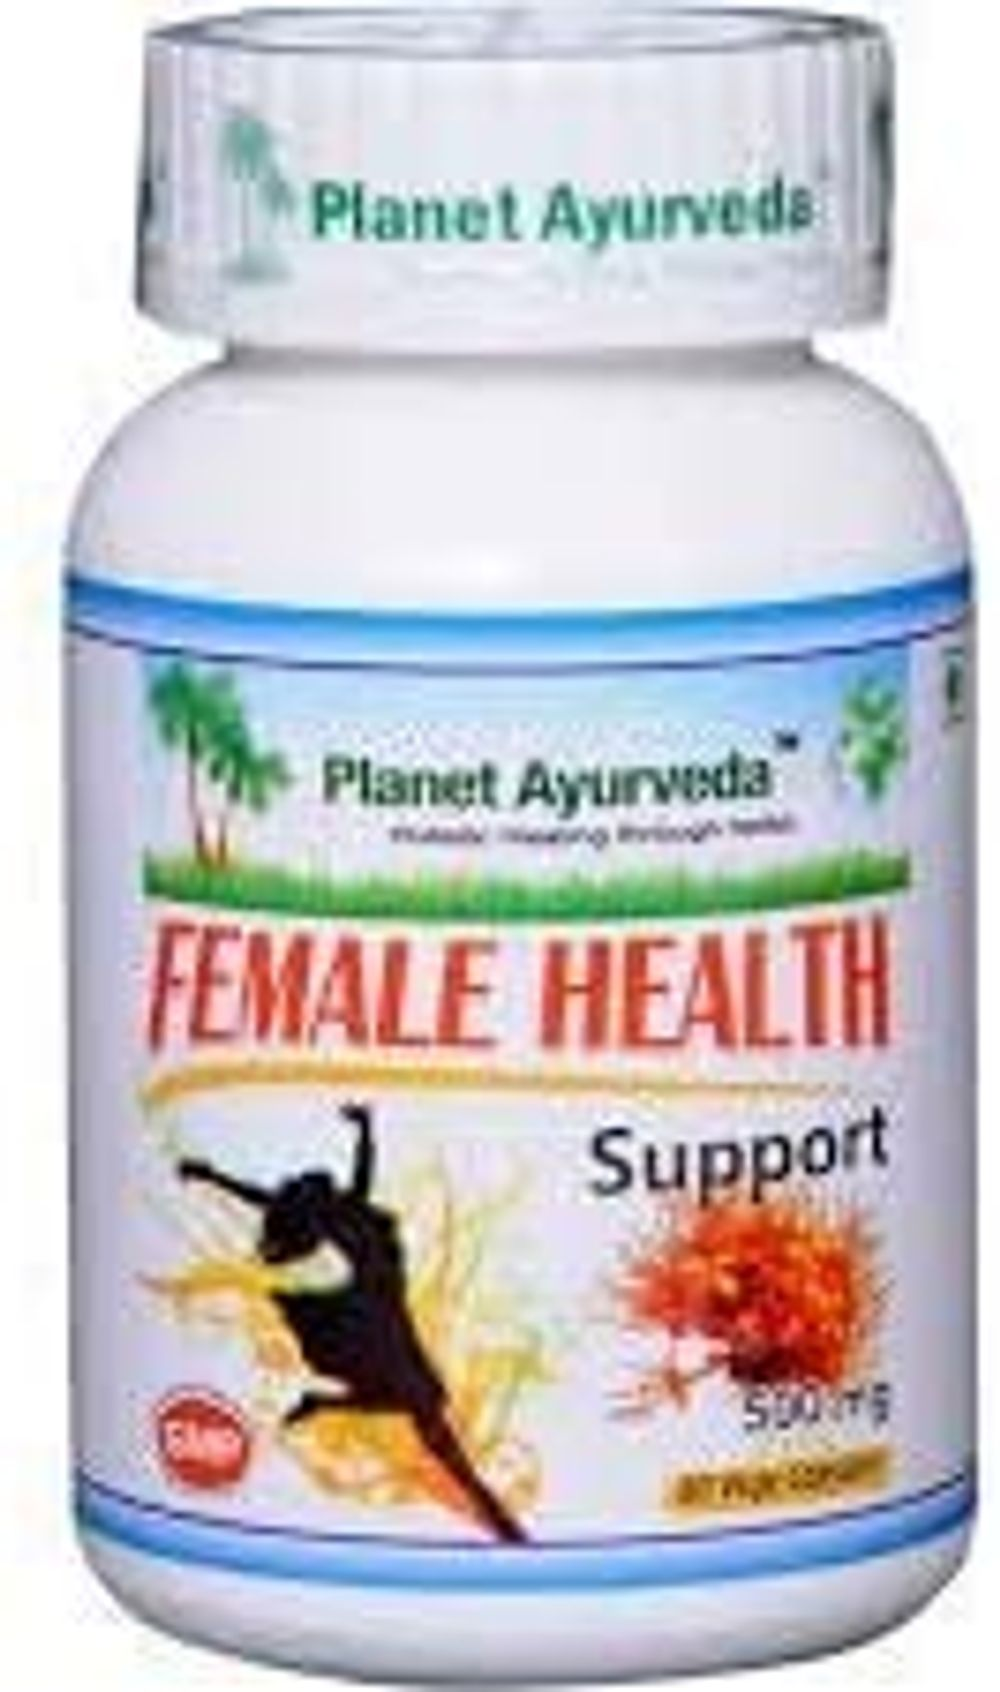 Planet Ayurveda Female Health Support | A Complete Herbal Health Care Supplement | Immunity Booster | Contains Ashok, Lodhra & Shatavari Herbs | 60 Veg Capsules, 500MG